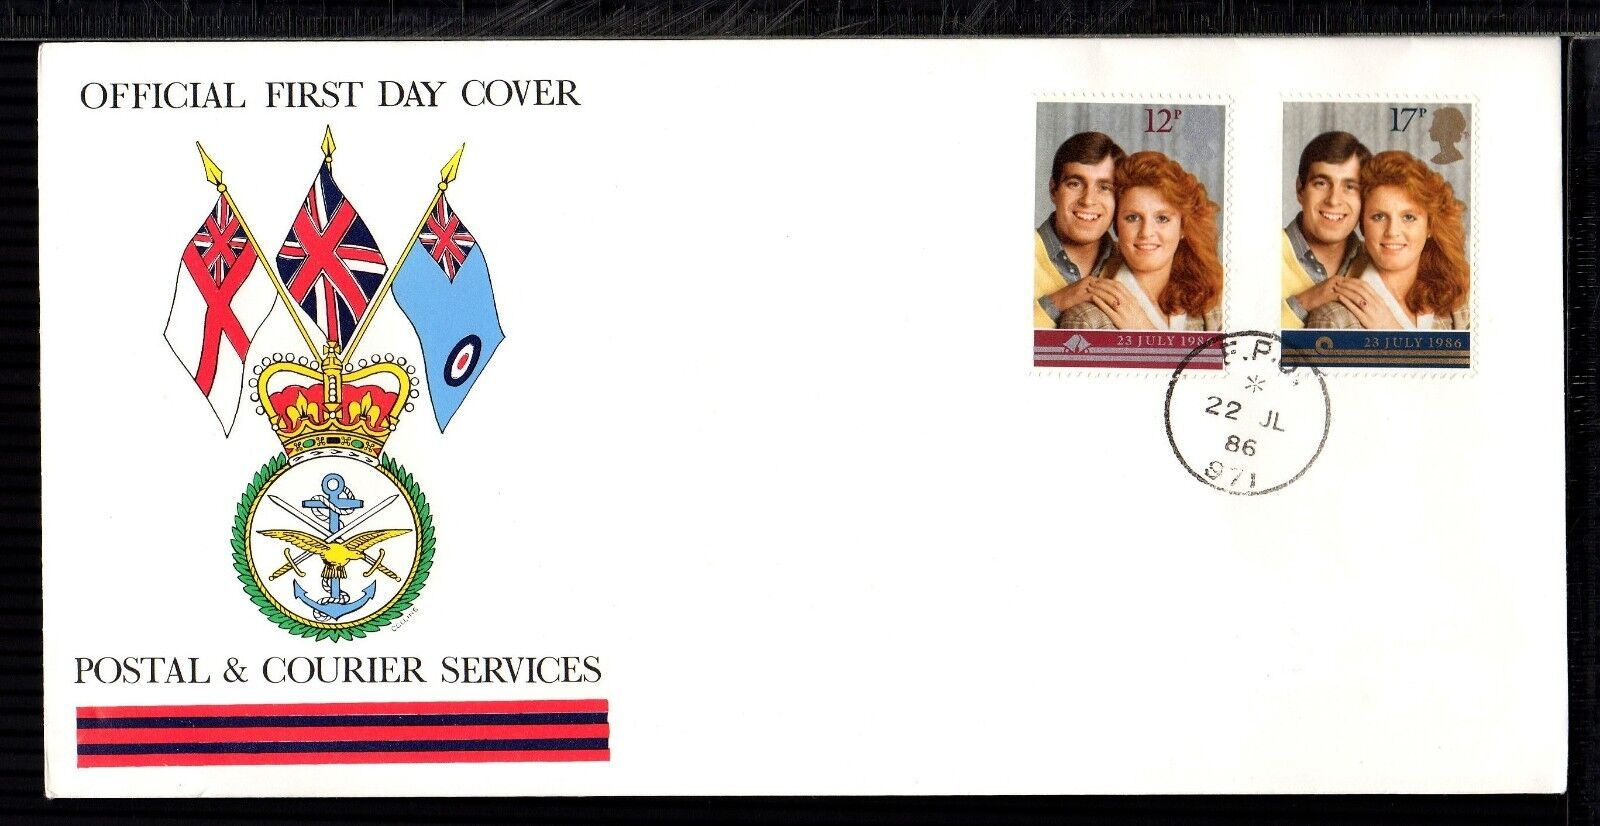 1986 ROYAL WEDDING: Postal and Courier Services Official FDC with FPO 971 CDS